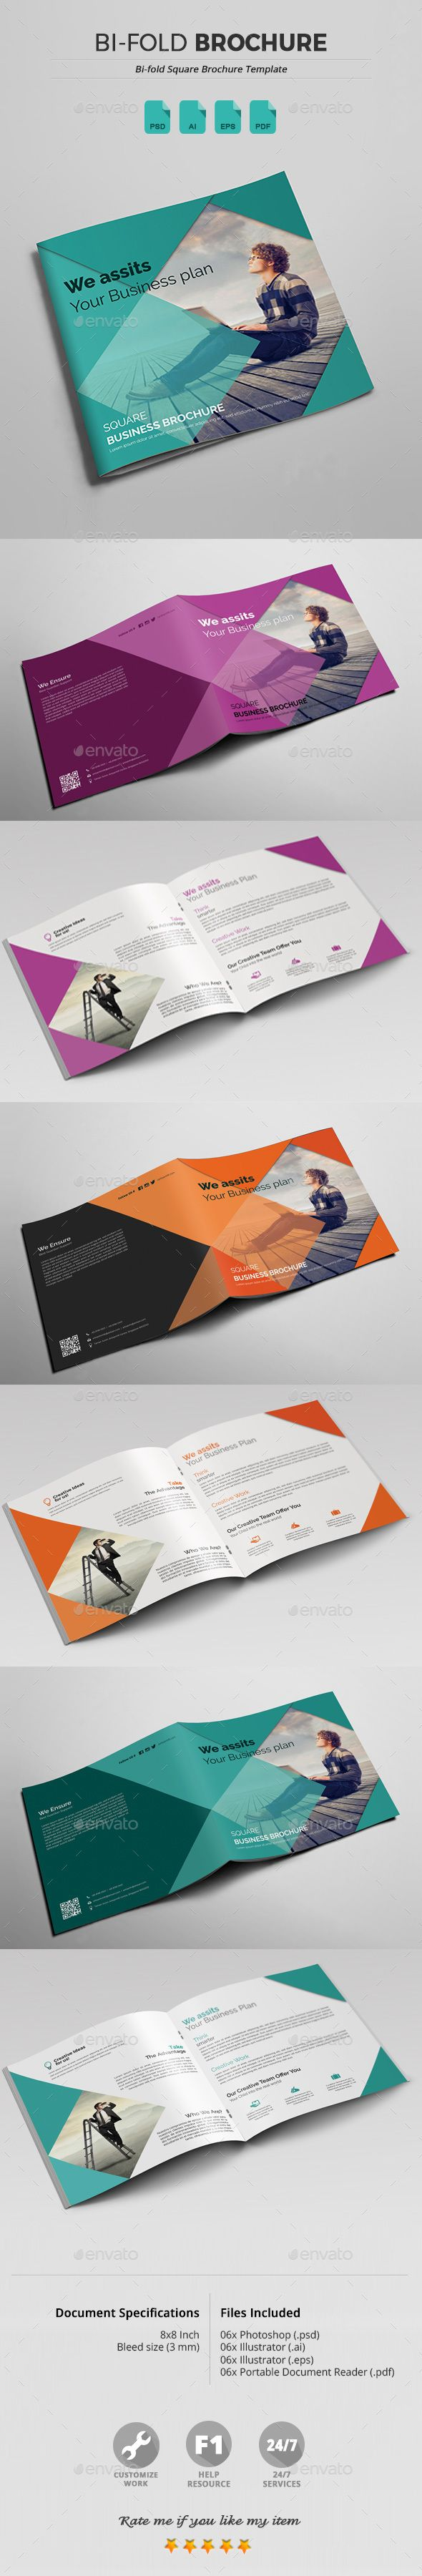 BiFold Square Brochure Design Template Corporate Brochure - Ai brochure template